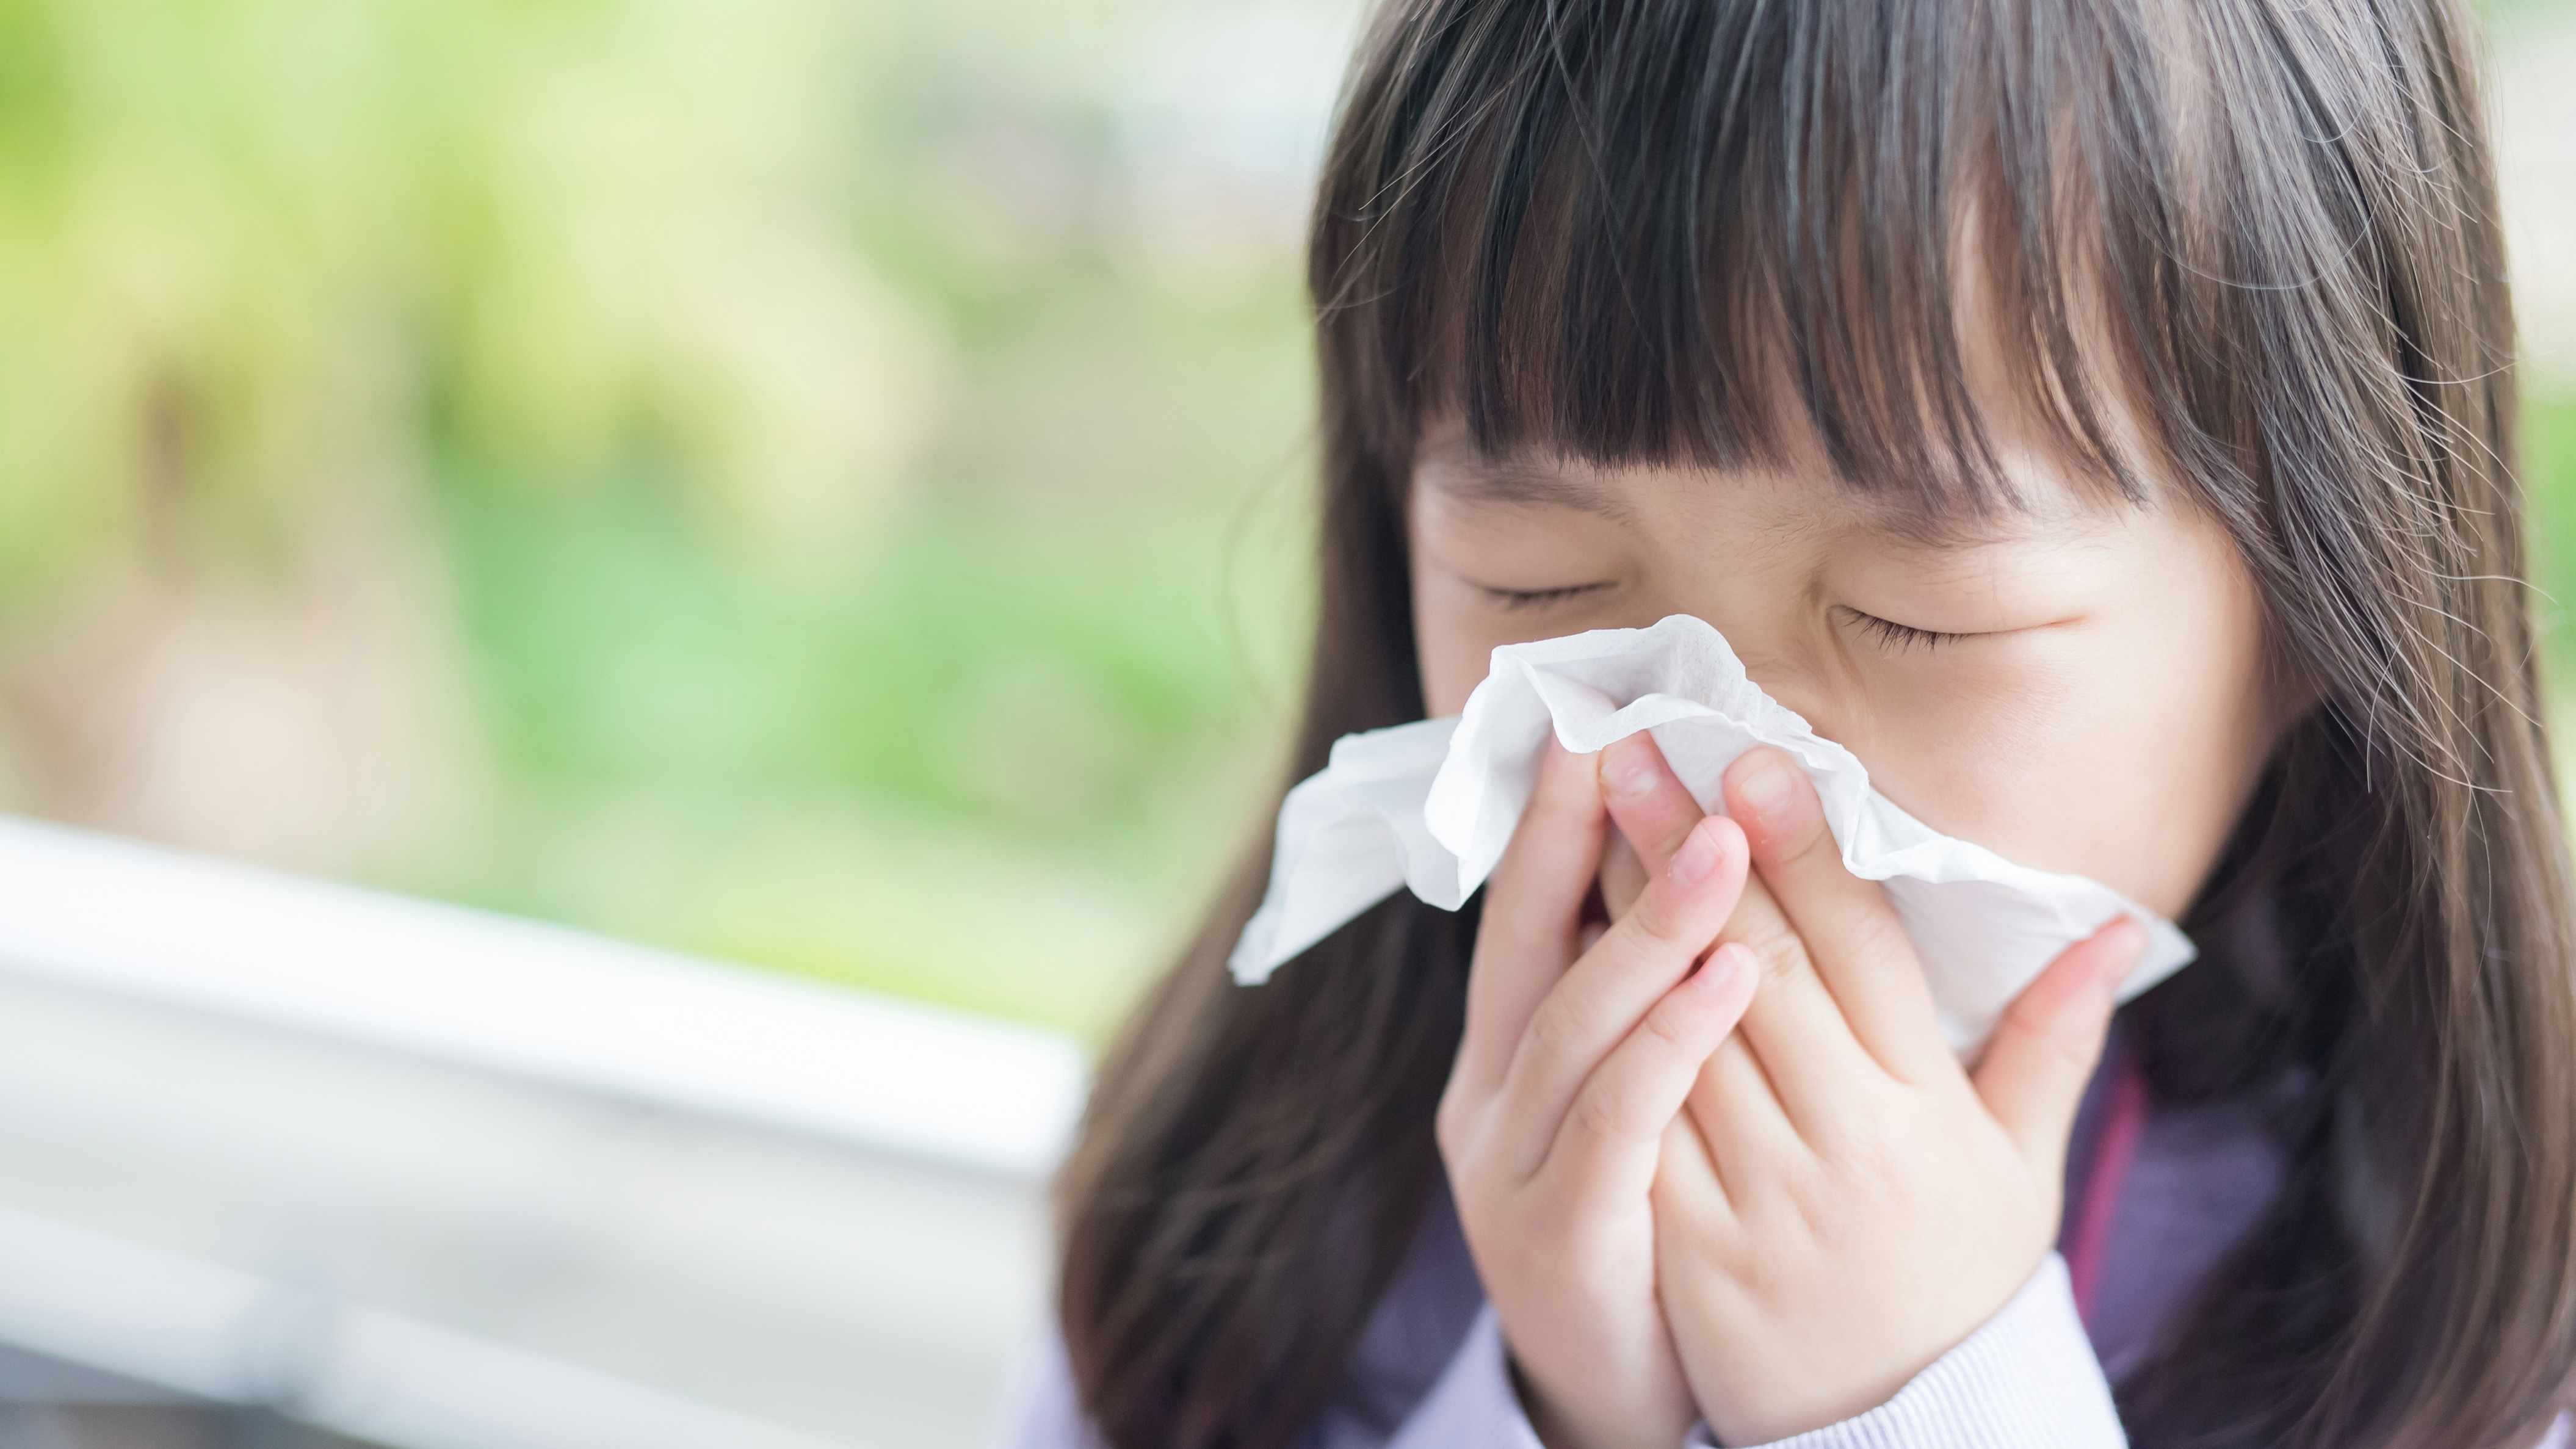 a little girl with a cold or sneezing blowing her nose into a tissue